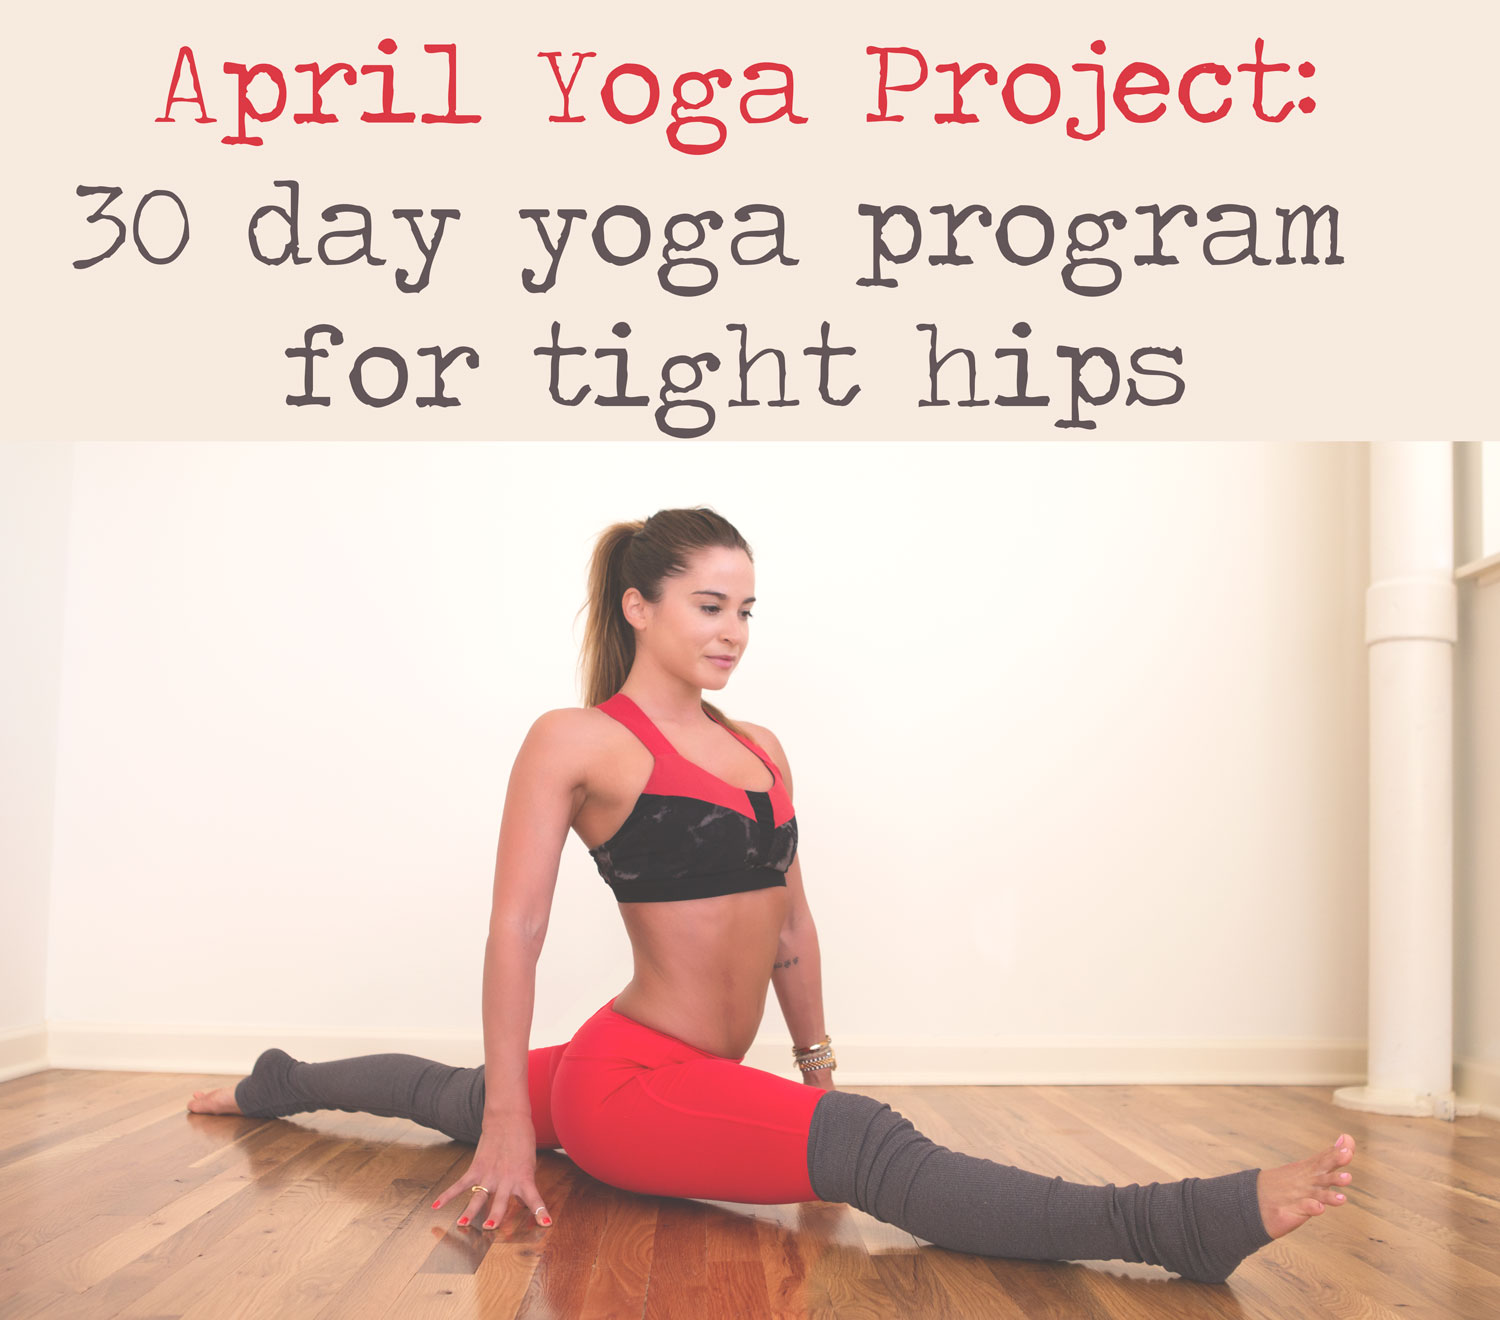 Pin now, and join in the 30 Day Yoga Program for Tight Hips  Wearing:  alo yoga pants  and  bra , c/o.